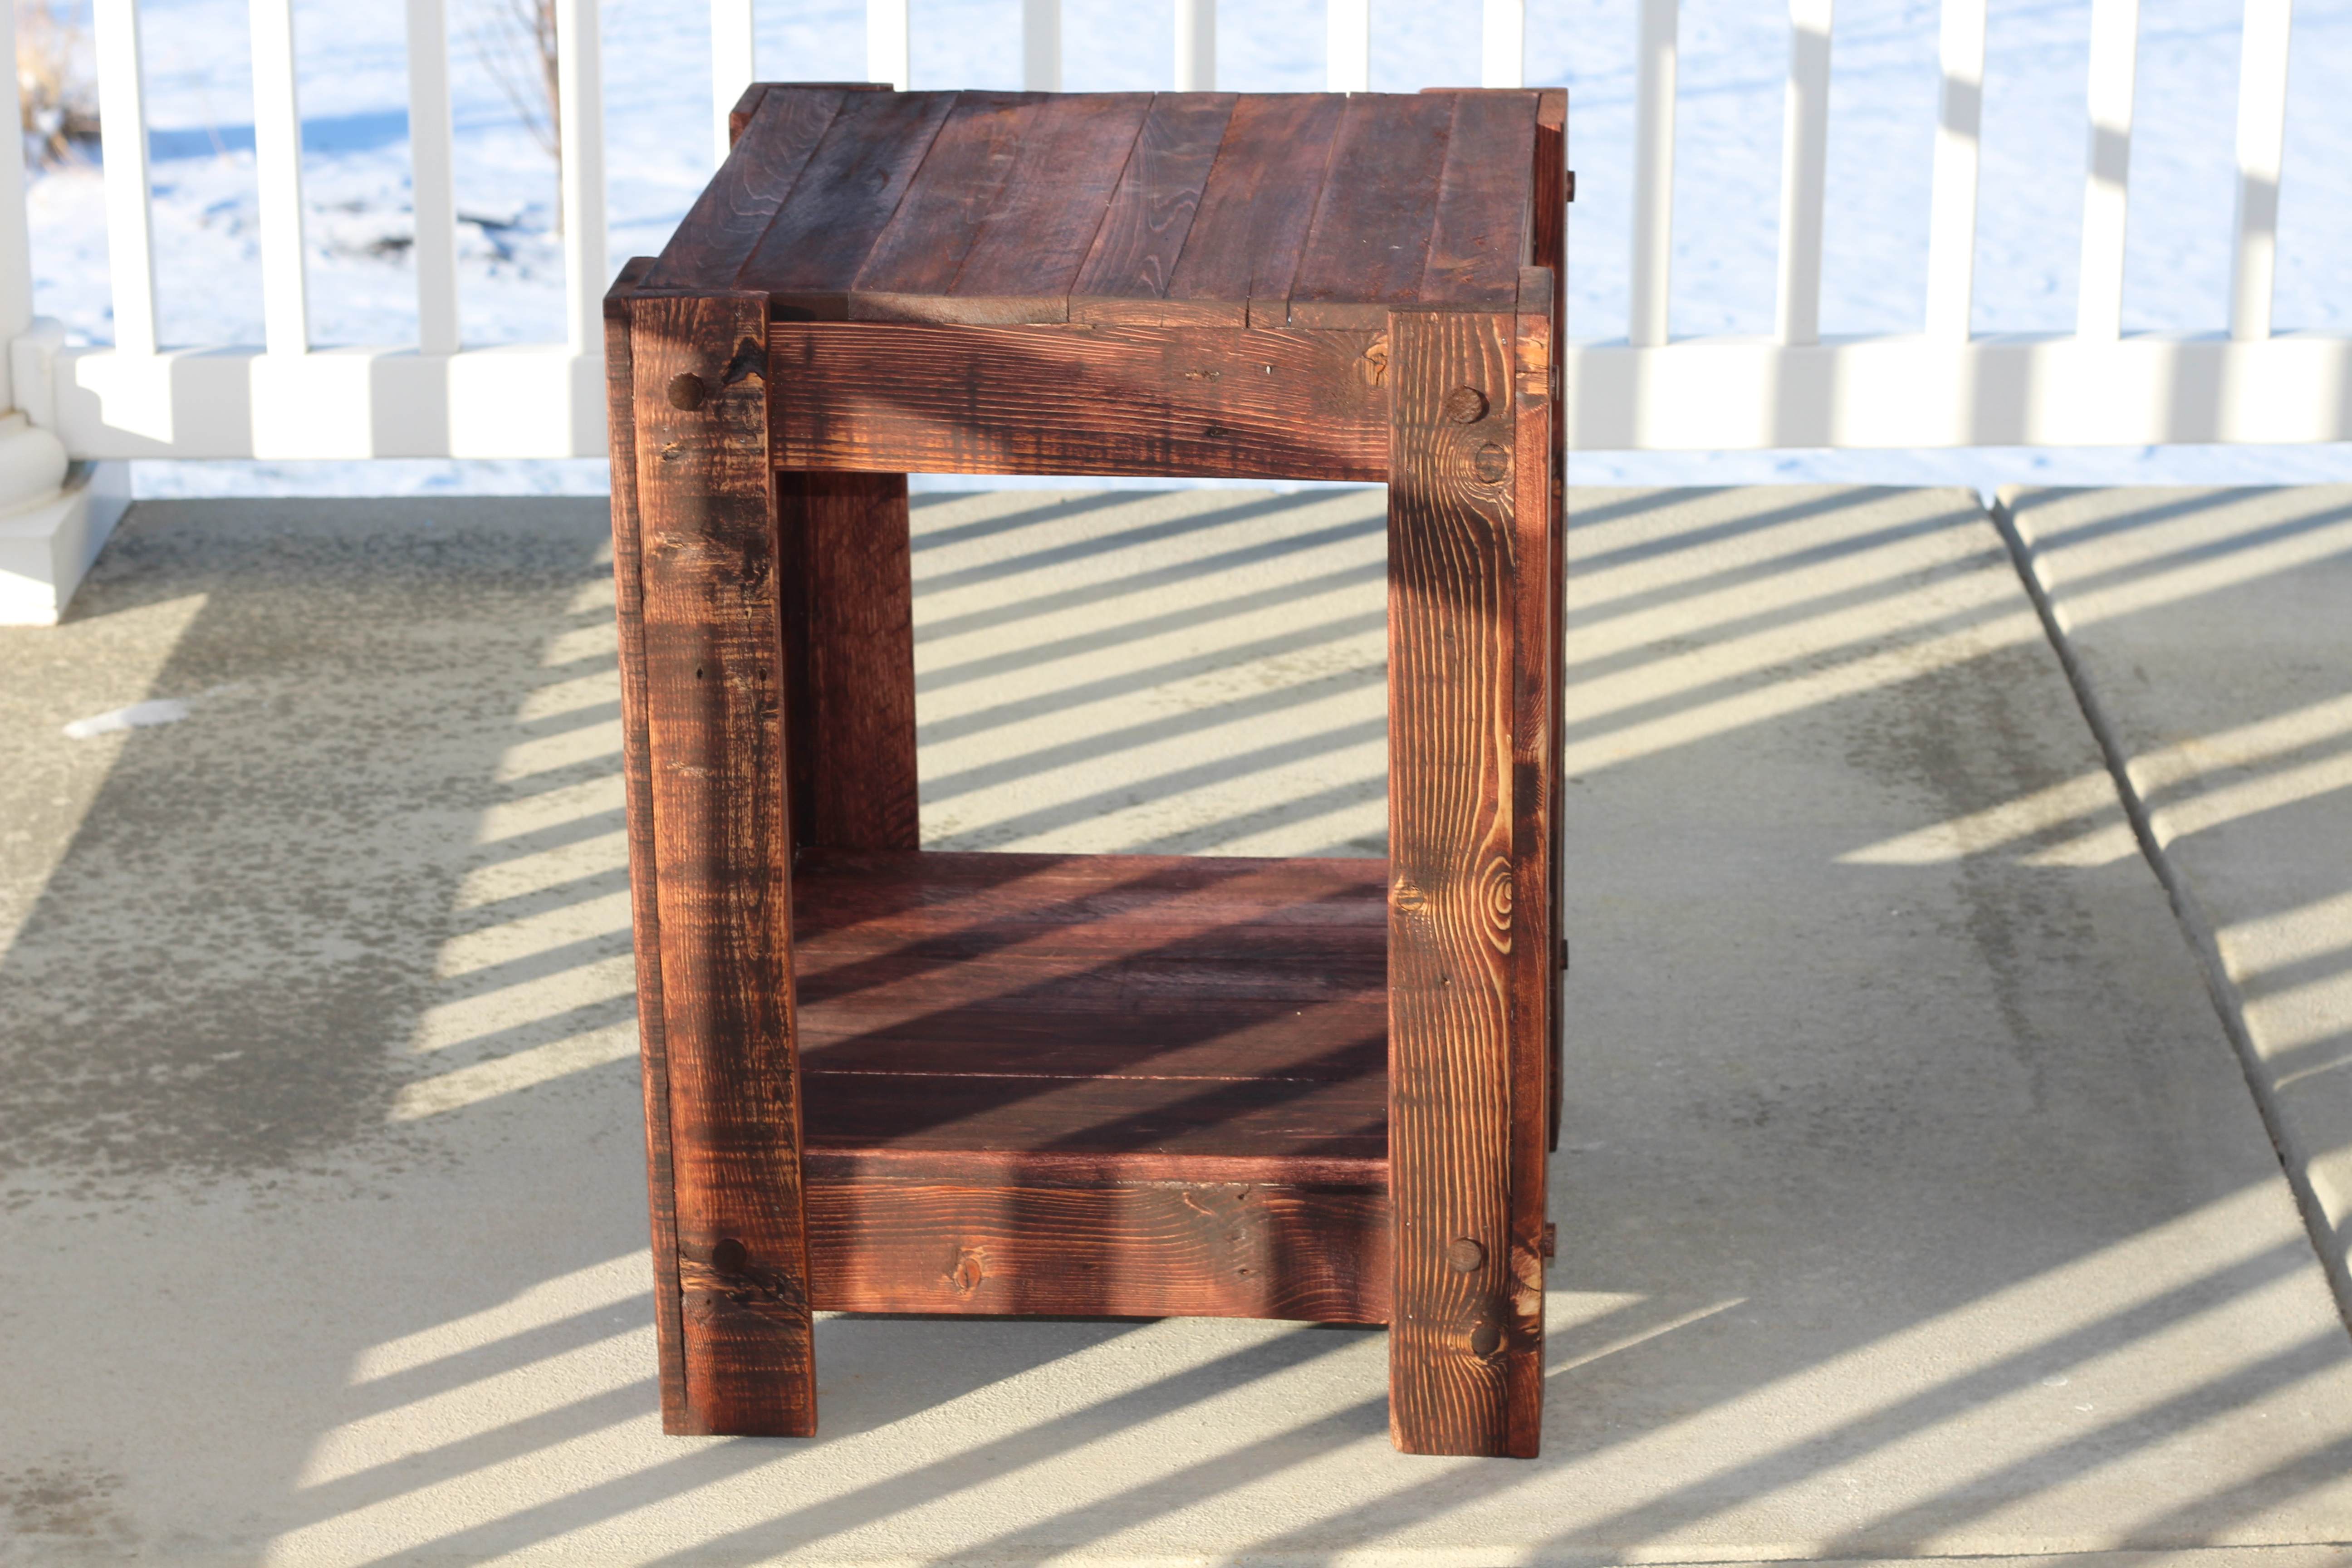 Merveilleux End Table Made From Pallets (plans Included)